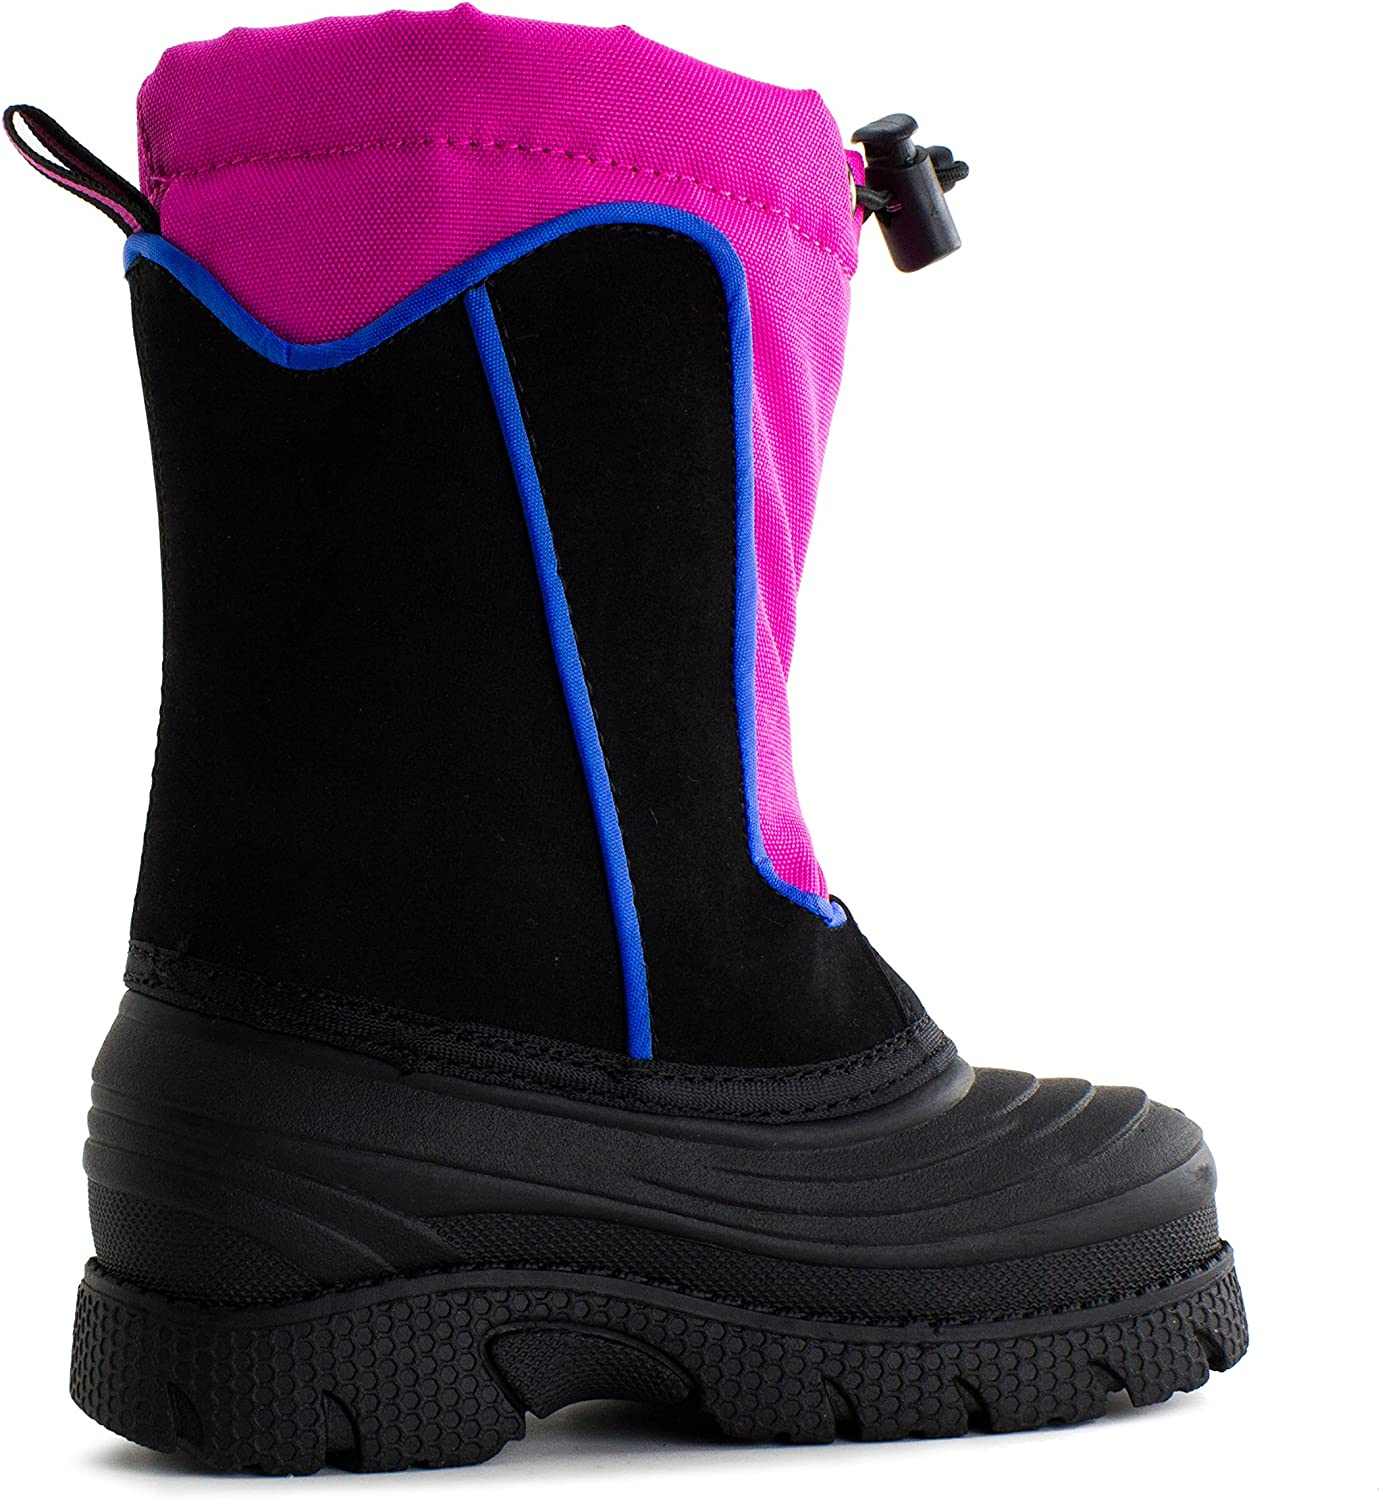 Fuchsia, 10 Link Bungee Toggle Water Proof Winter Boots